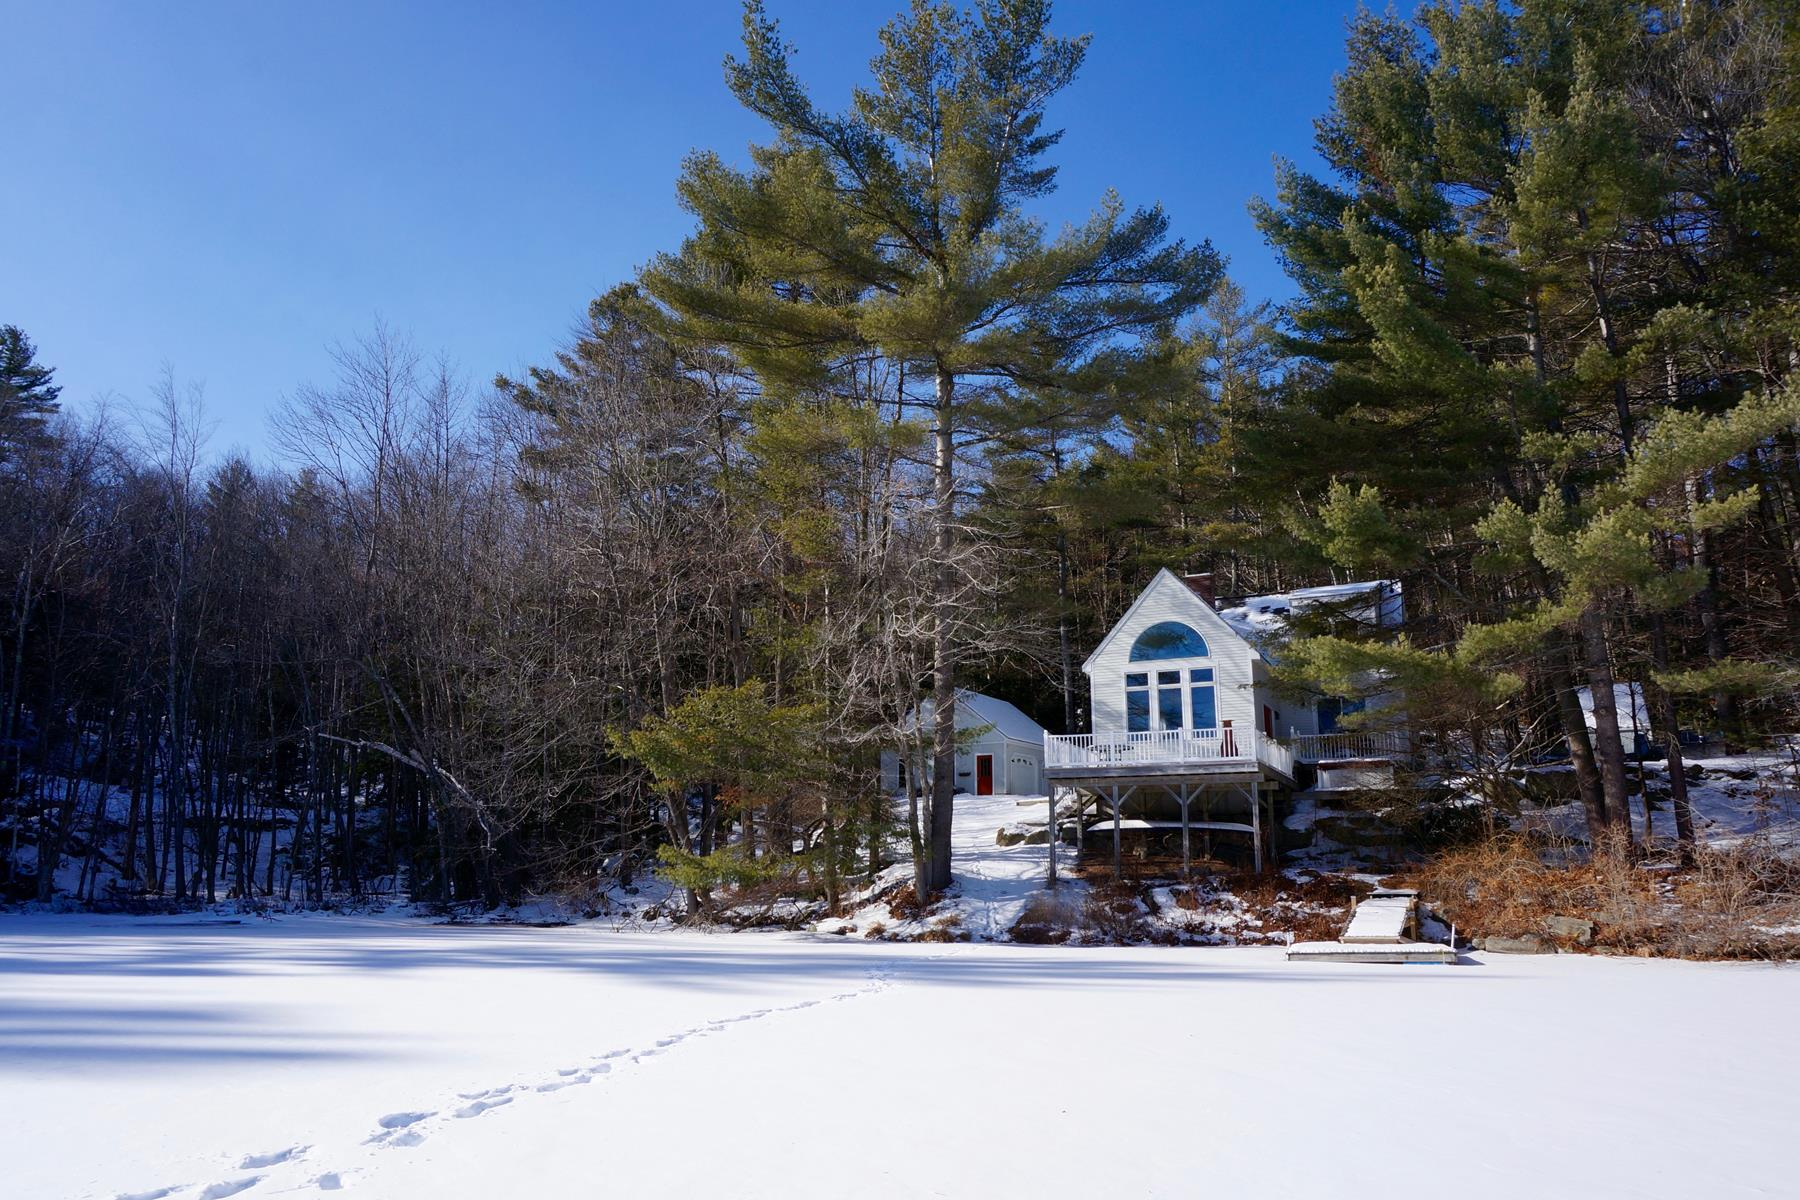 Single Family Home for Sale at 88 Marys Road Rd, Sunapee Sunapee, New Hampshire 03782 United States